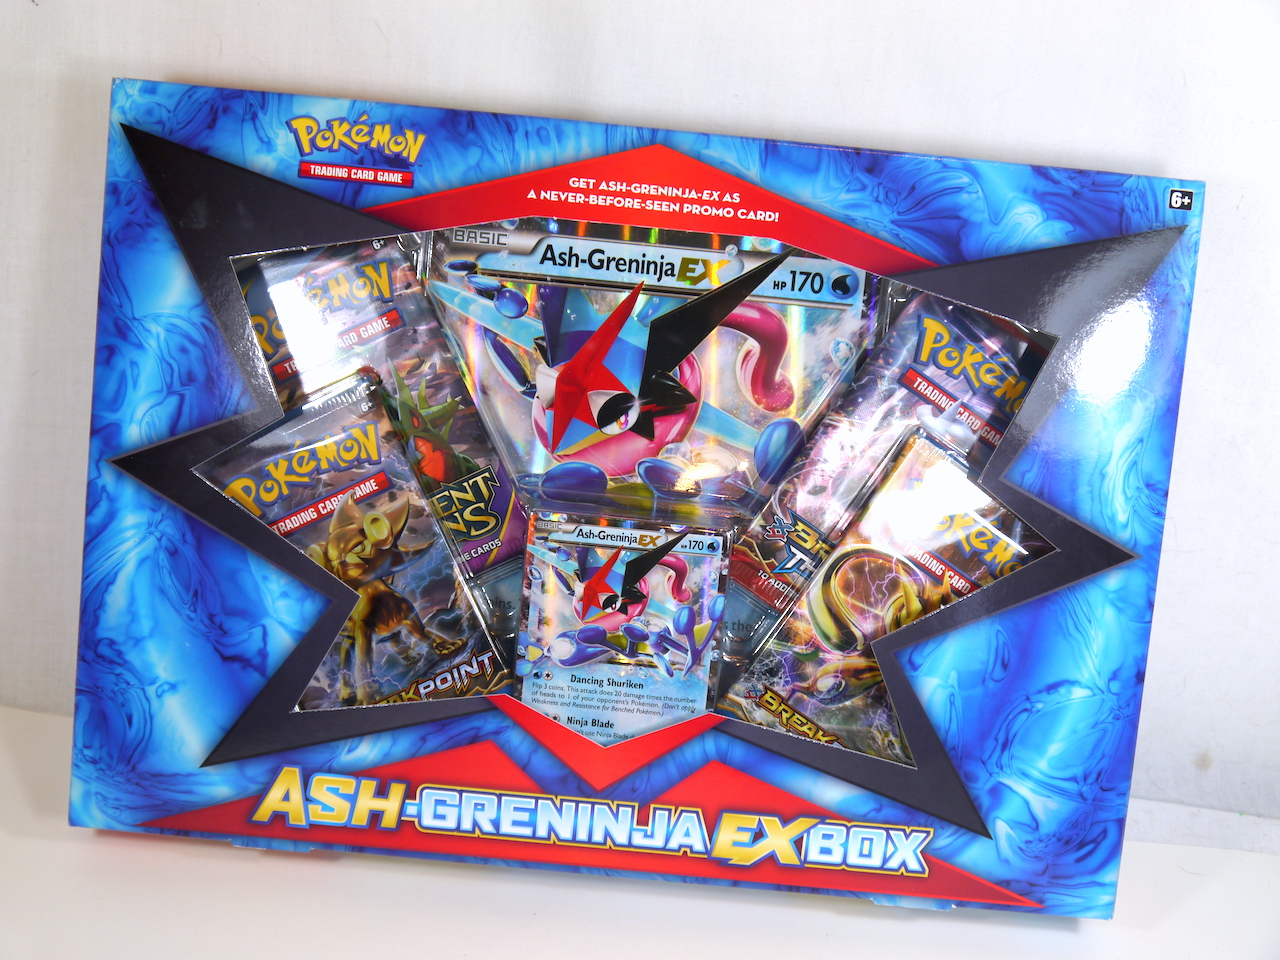 POKEMON CODE CARD FROM THE 2016 ASH-GRENINJA BOX